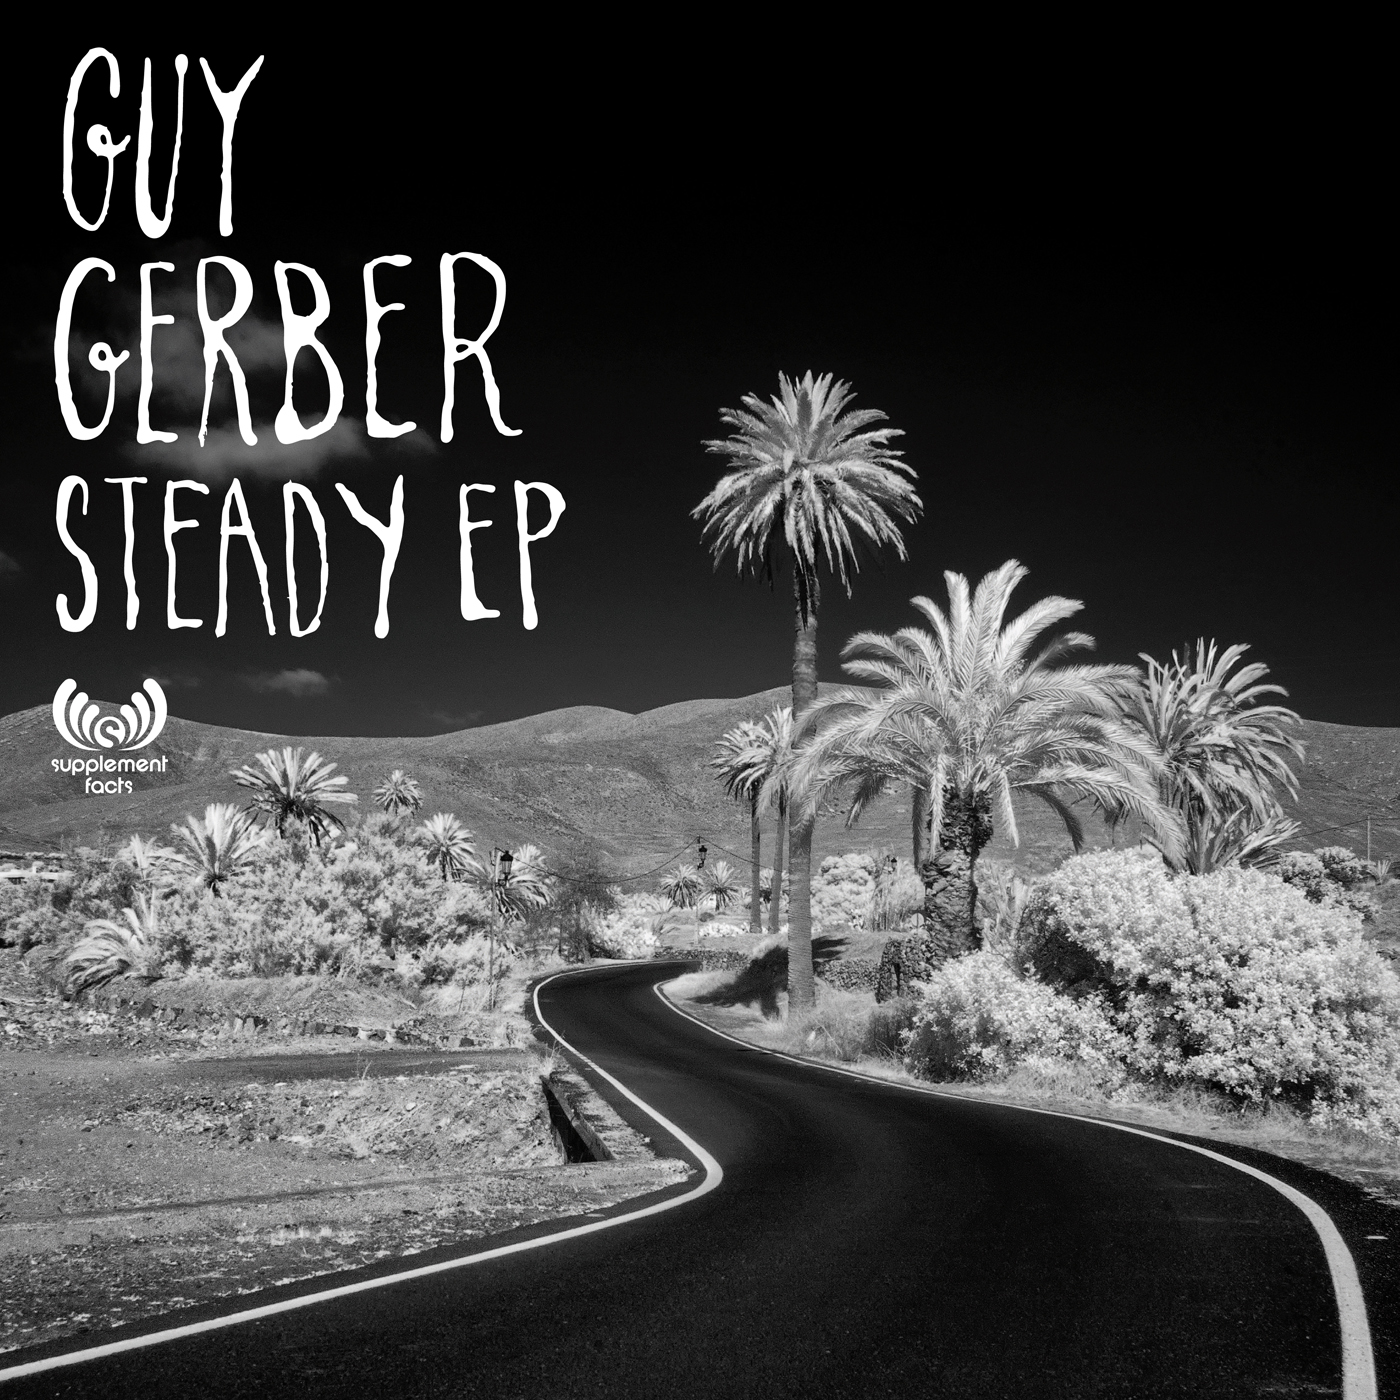 Steady EP - Guy Gerber